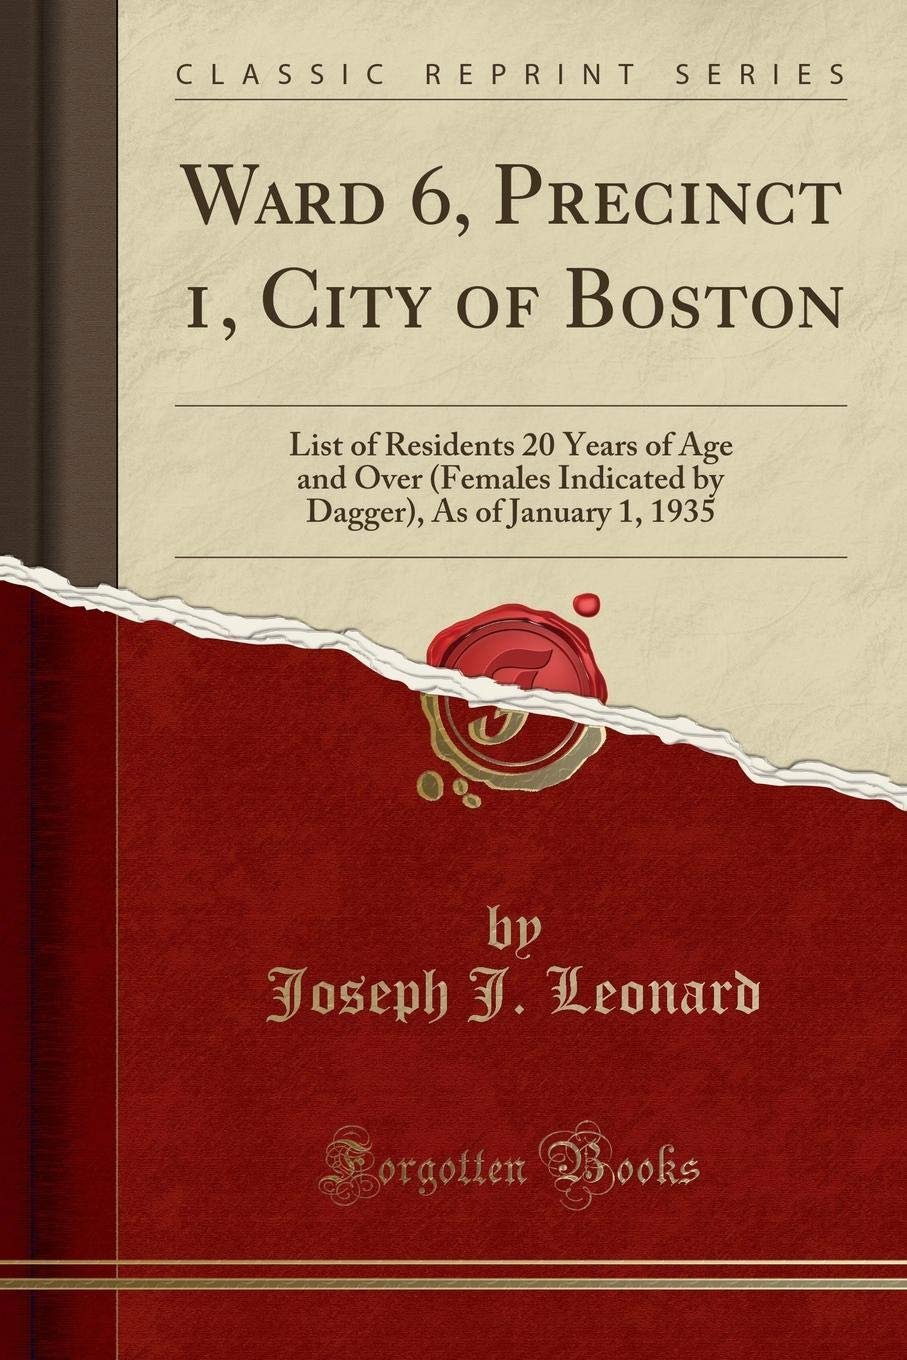 Ward 6, Precinct 1, City of Boston: List of Residents 20 Years of Age and Over (Females Indicated by Dagger), As of January 1, 1935 (Classic Reprint) PDF